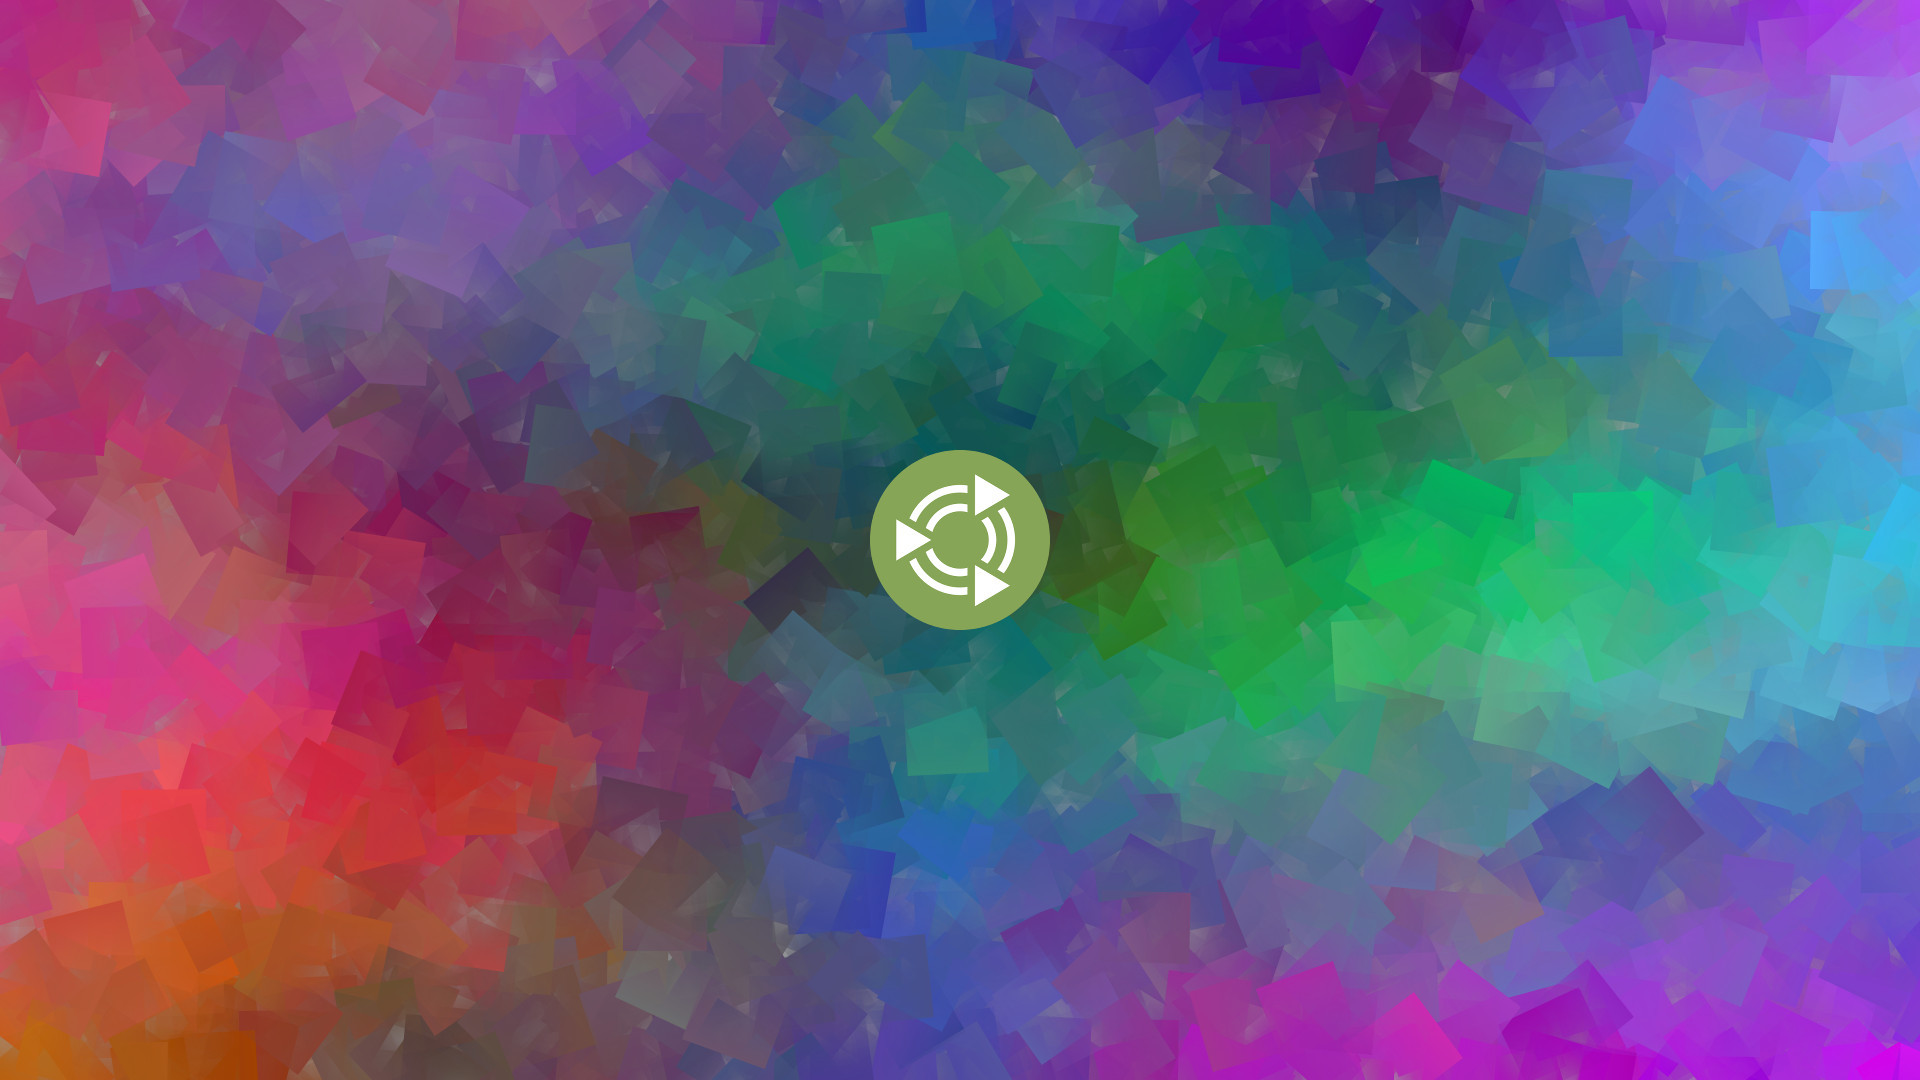 ubuntu mate color cube wallpapers - artwork - ubuntu mate community